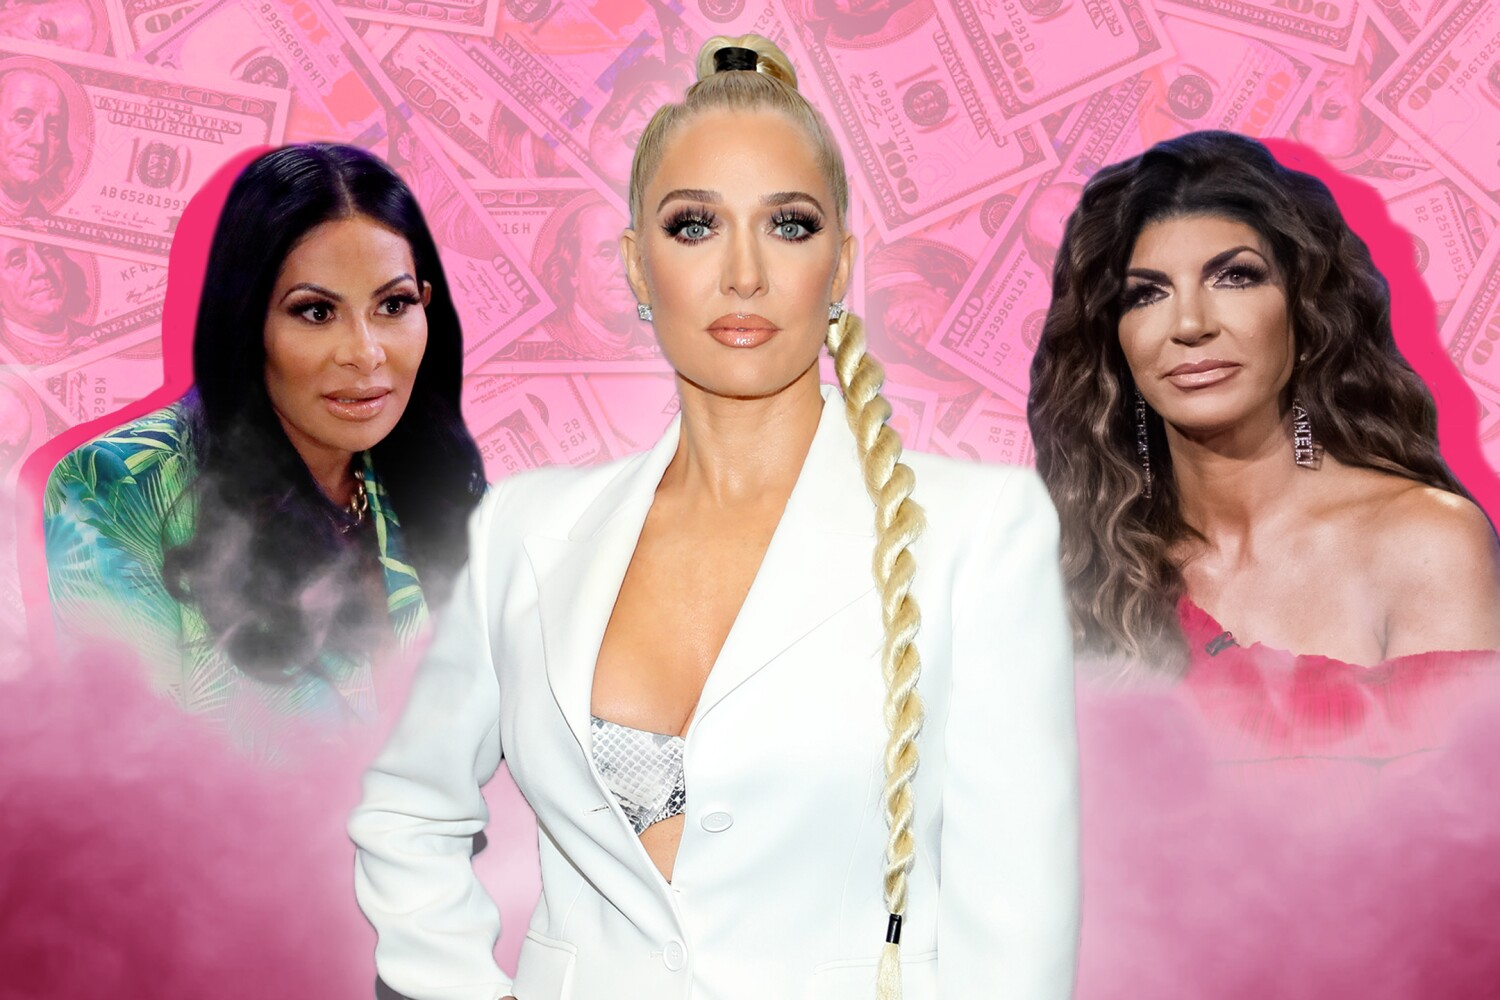 How 'The Real Housewives' glam arms race gets its cast into hot water